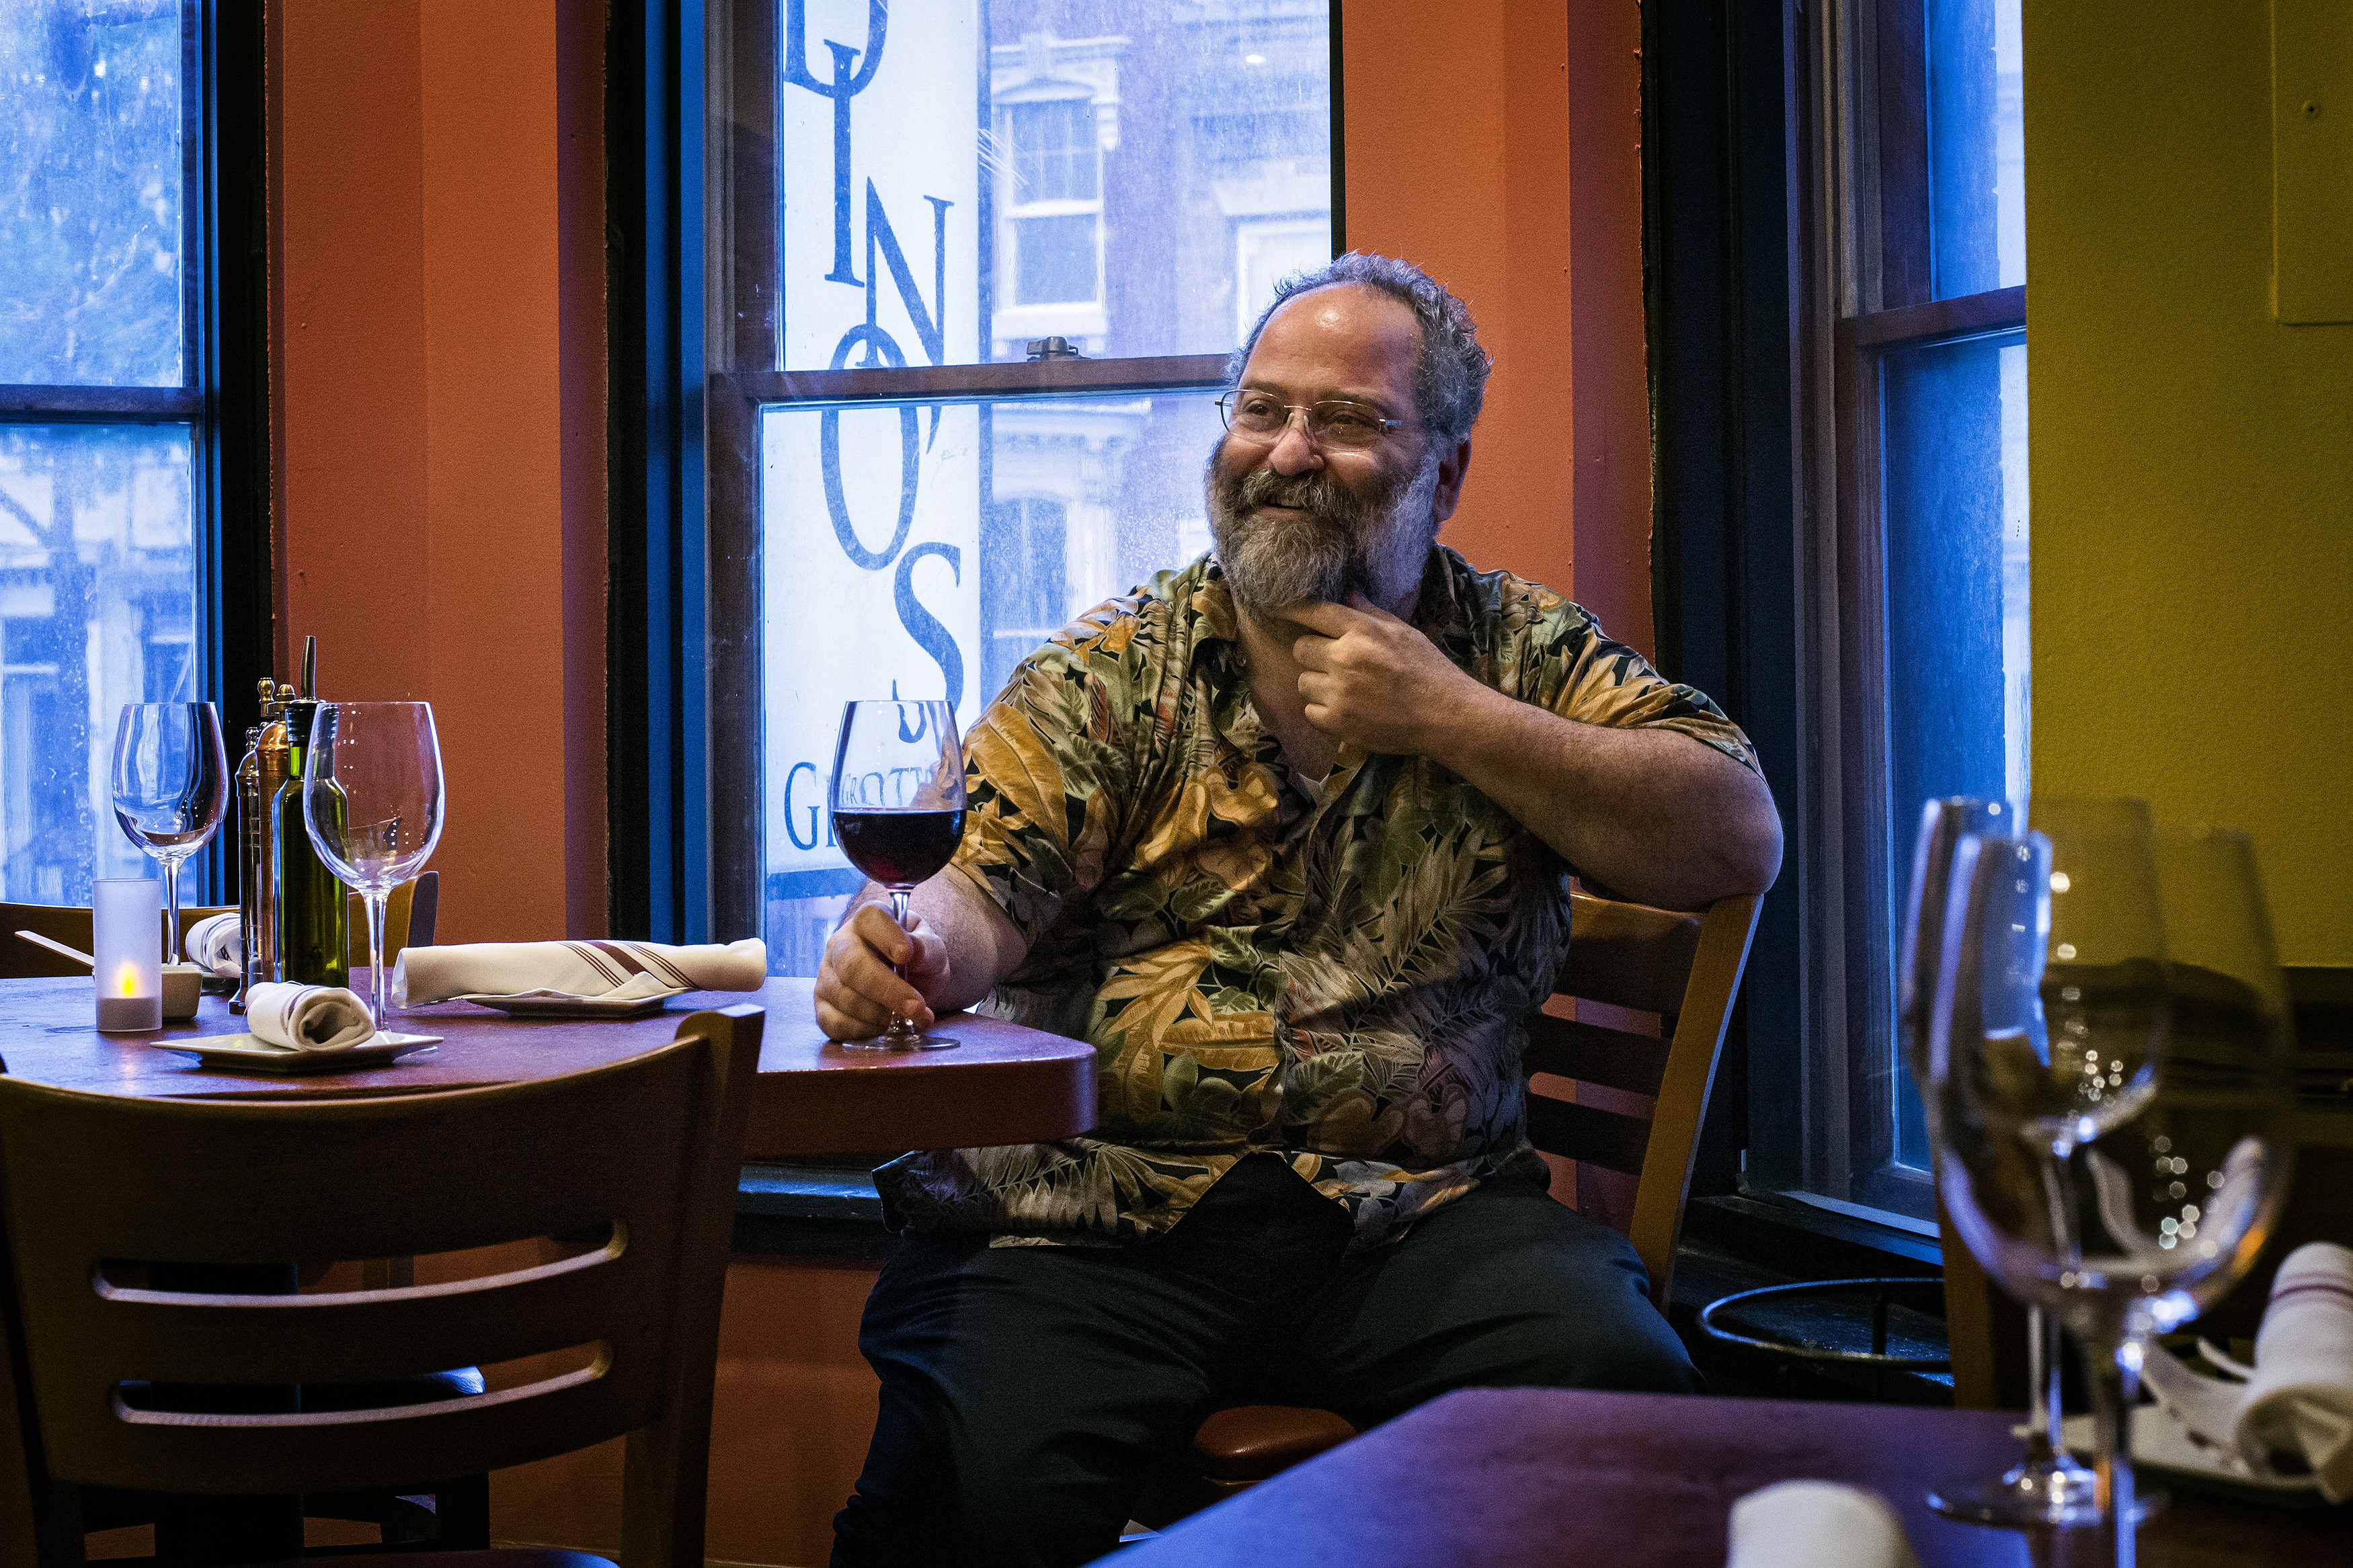 Owner Dean Gold sits inside Dino's Grotto